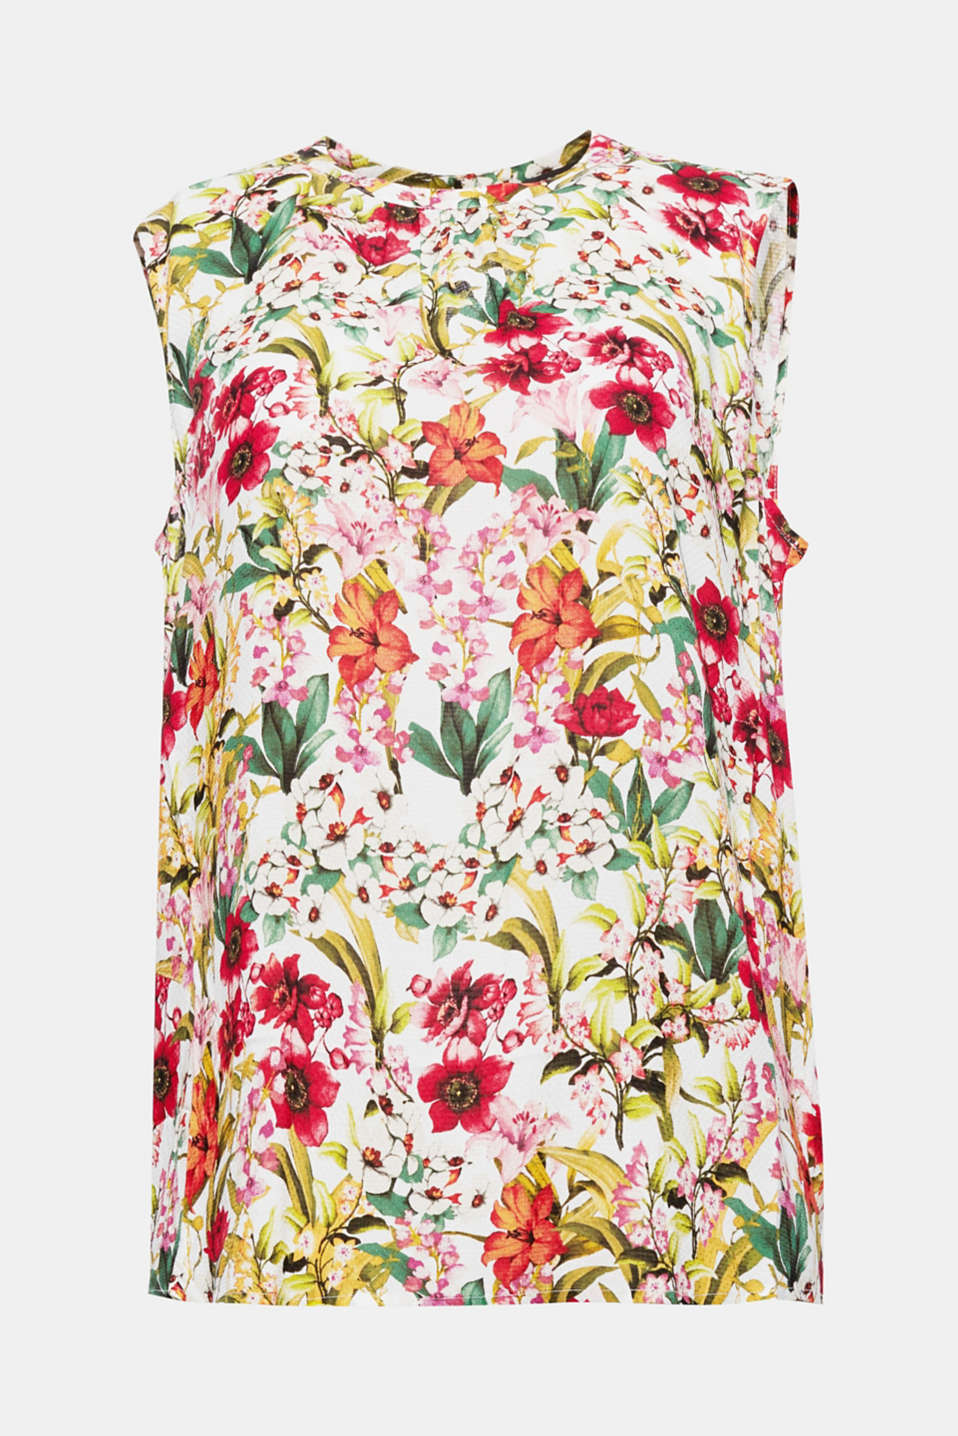 Flowing, feminine, flower power! This sleeveless blouse top features a romantic pattern with flowers and blossoms and a subtly pleated round neckline.